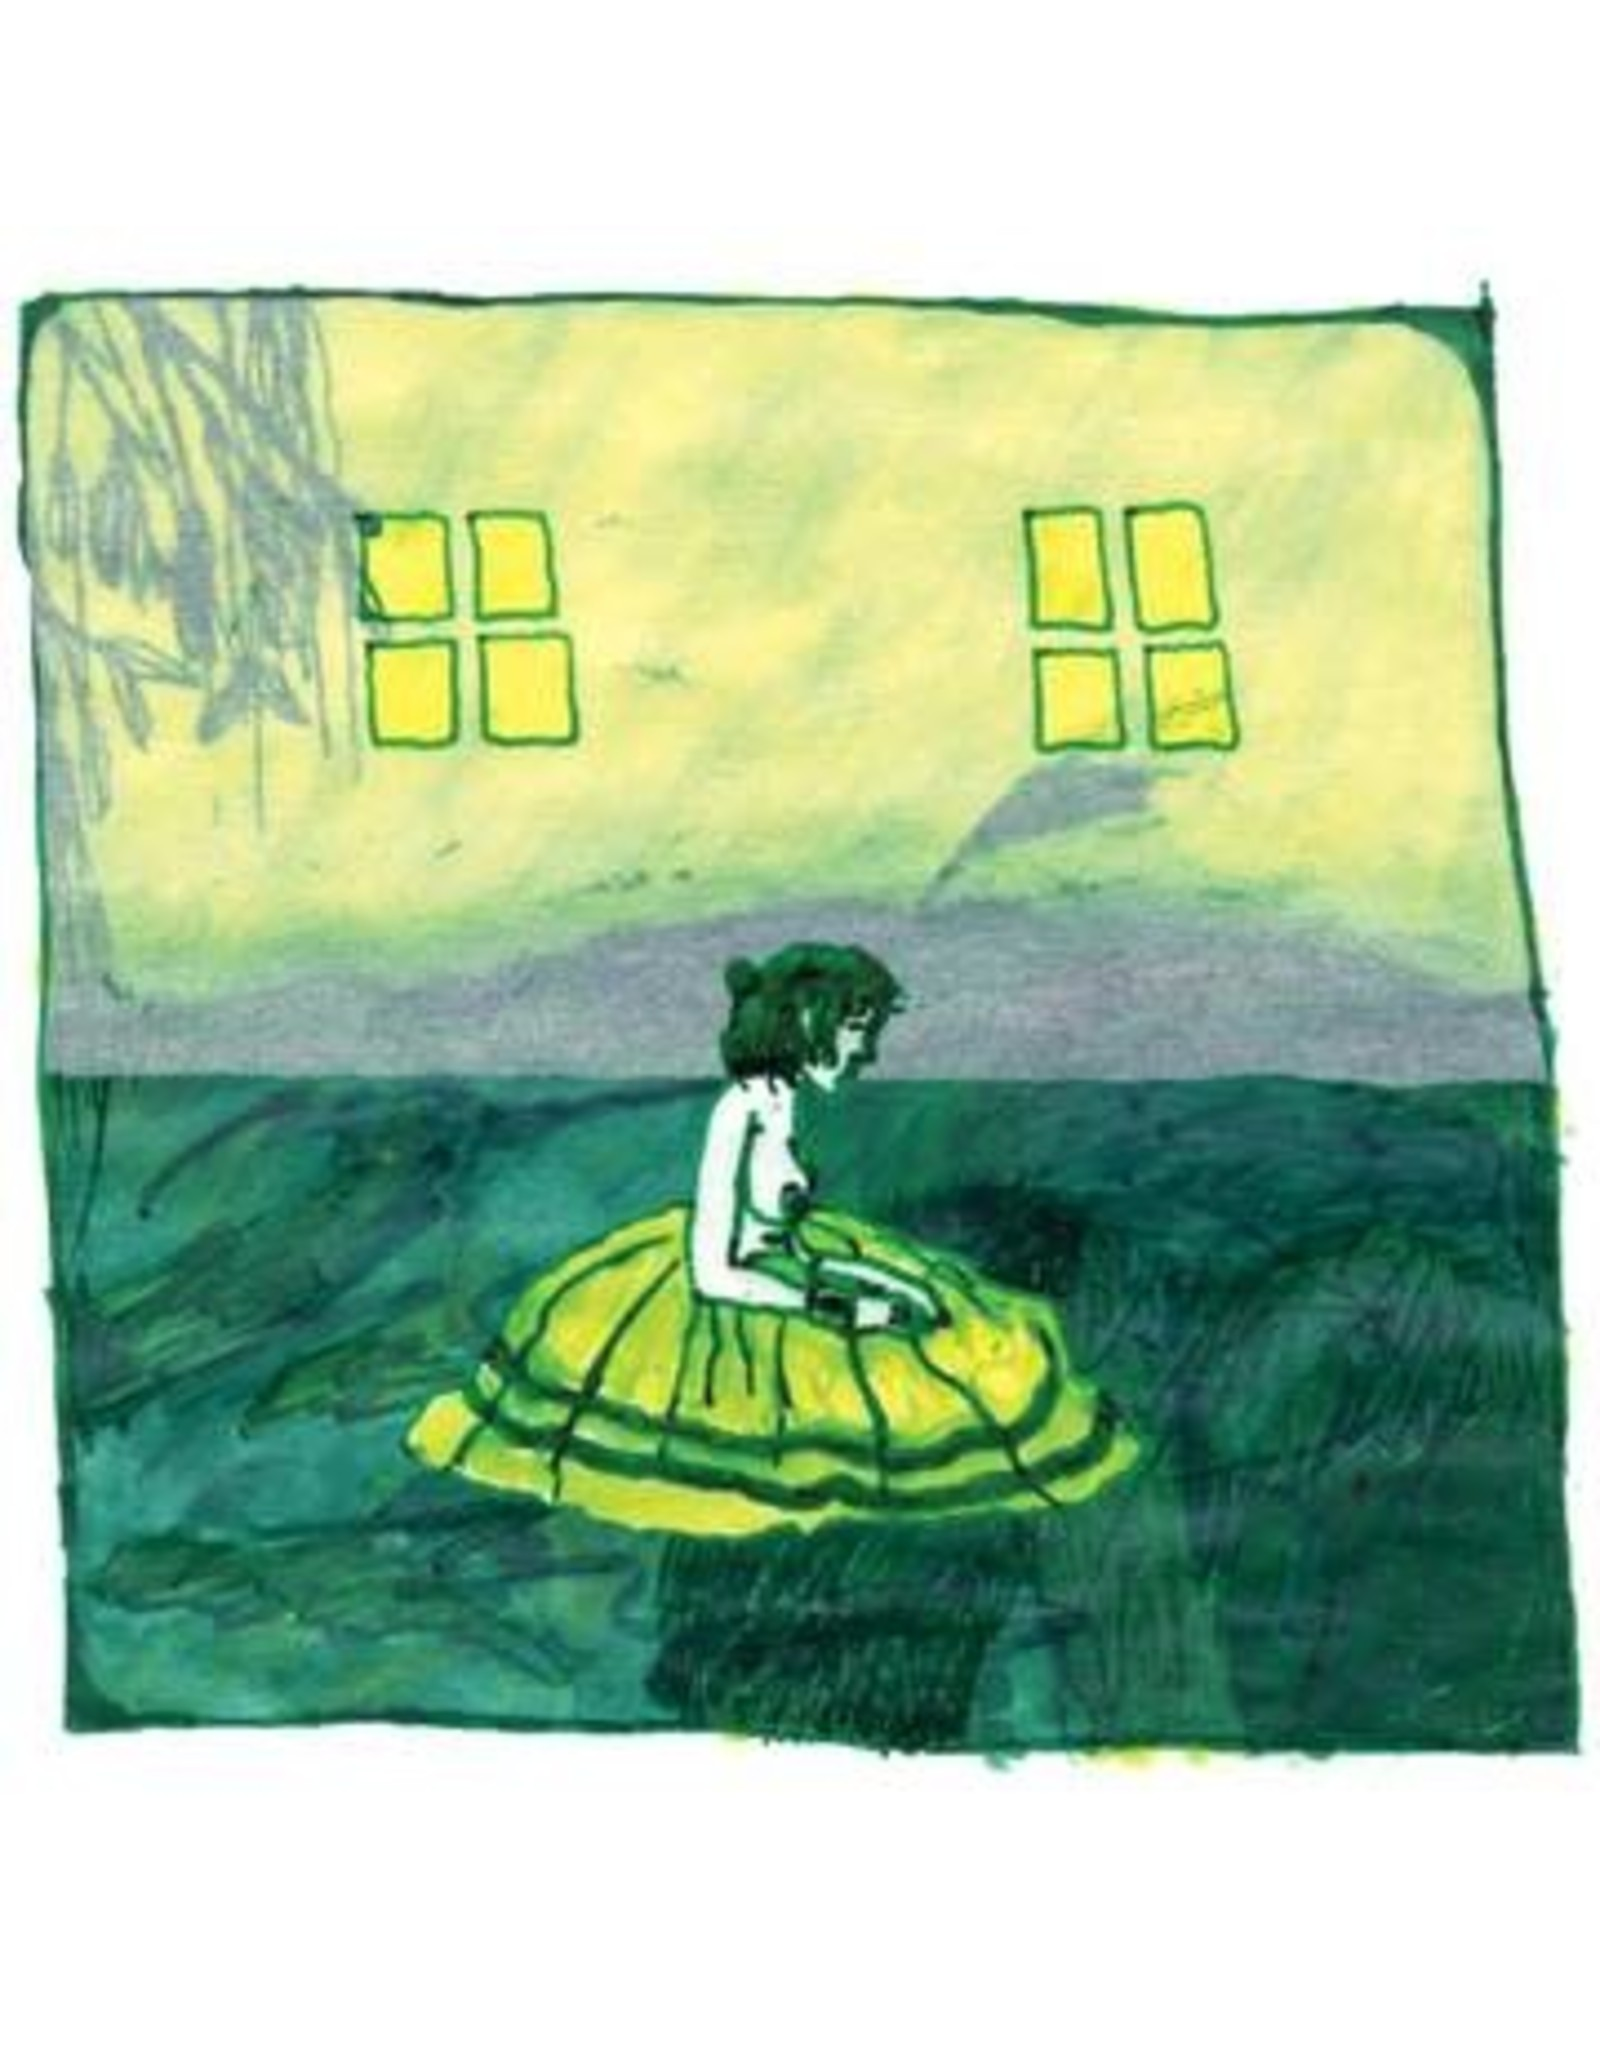 Domino Animal Collective: 2021RSD1 Prospect Hummer (GREEN AND YELLOW STARBURST) LP